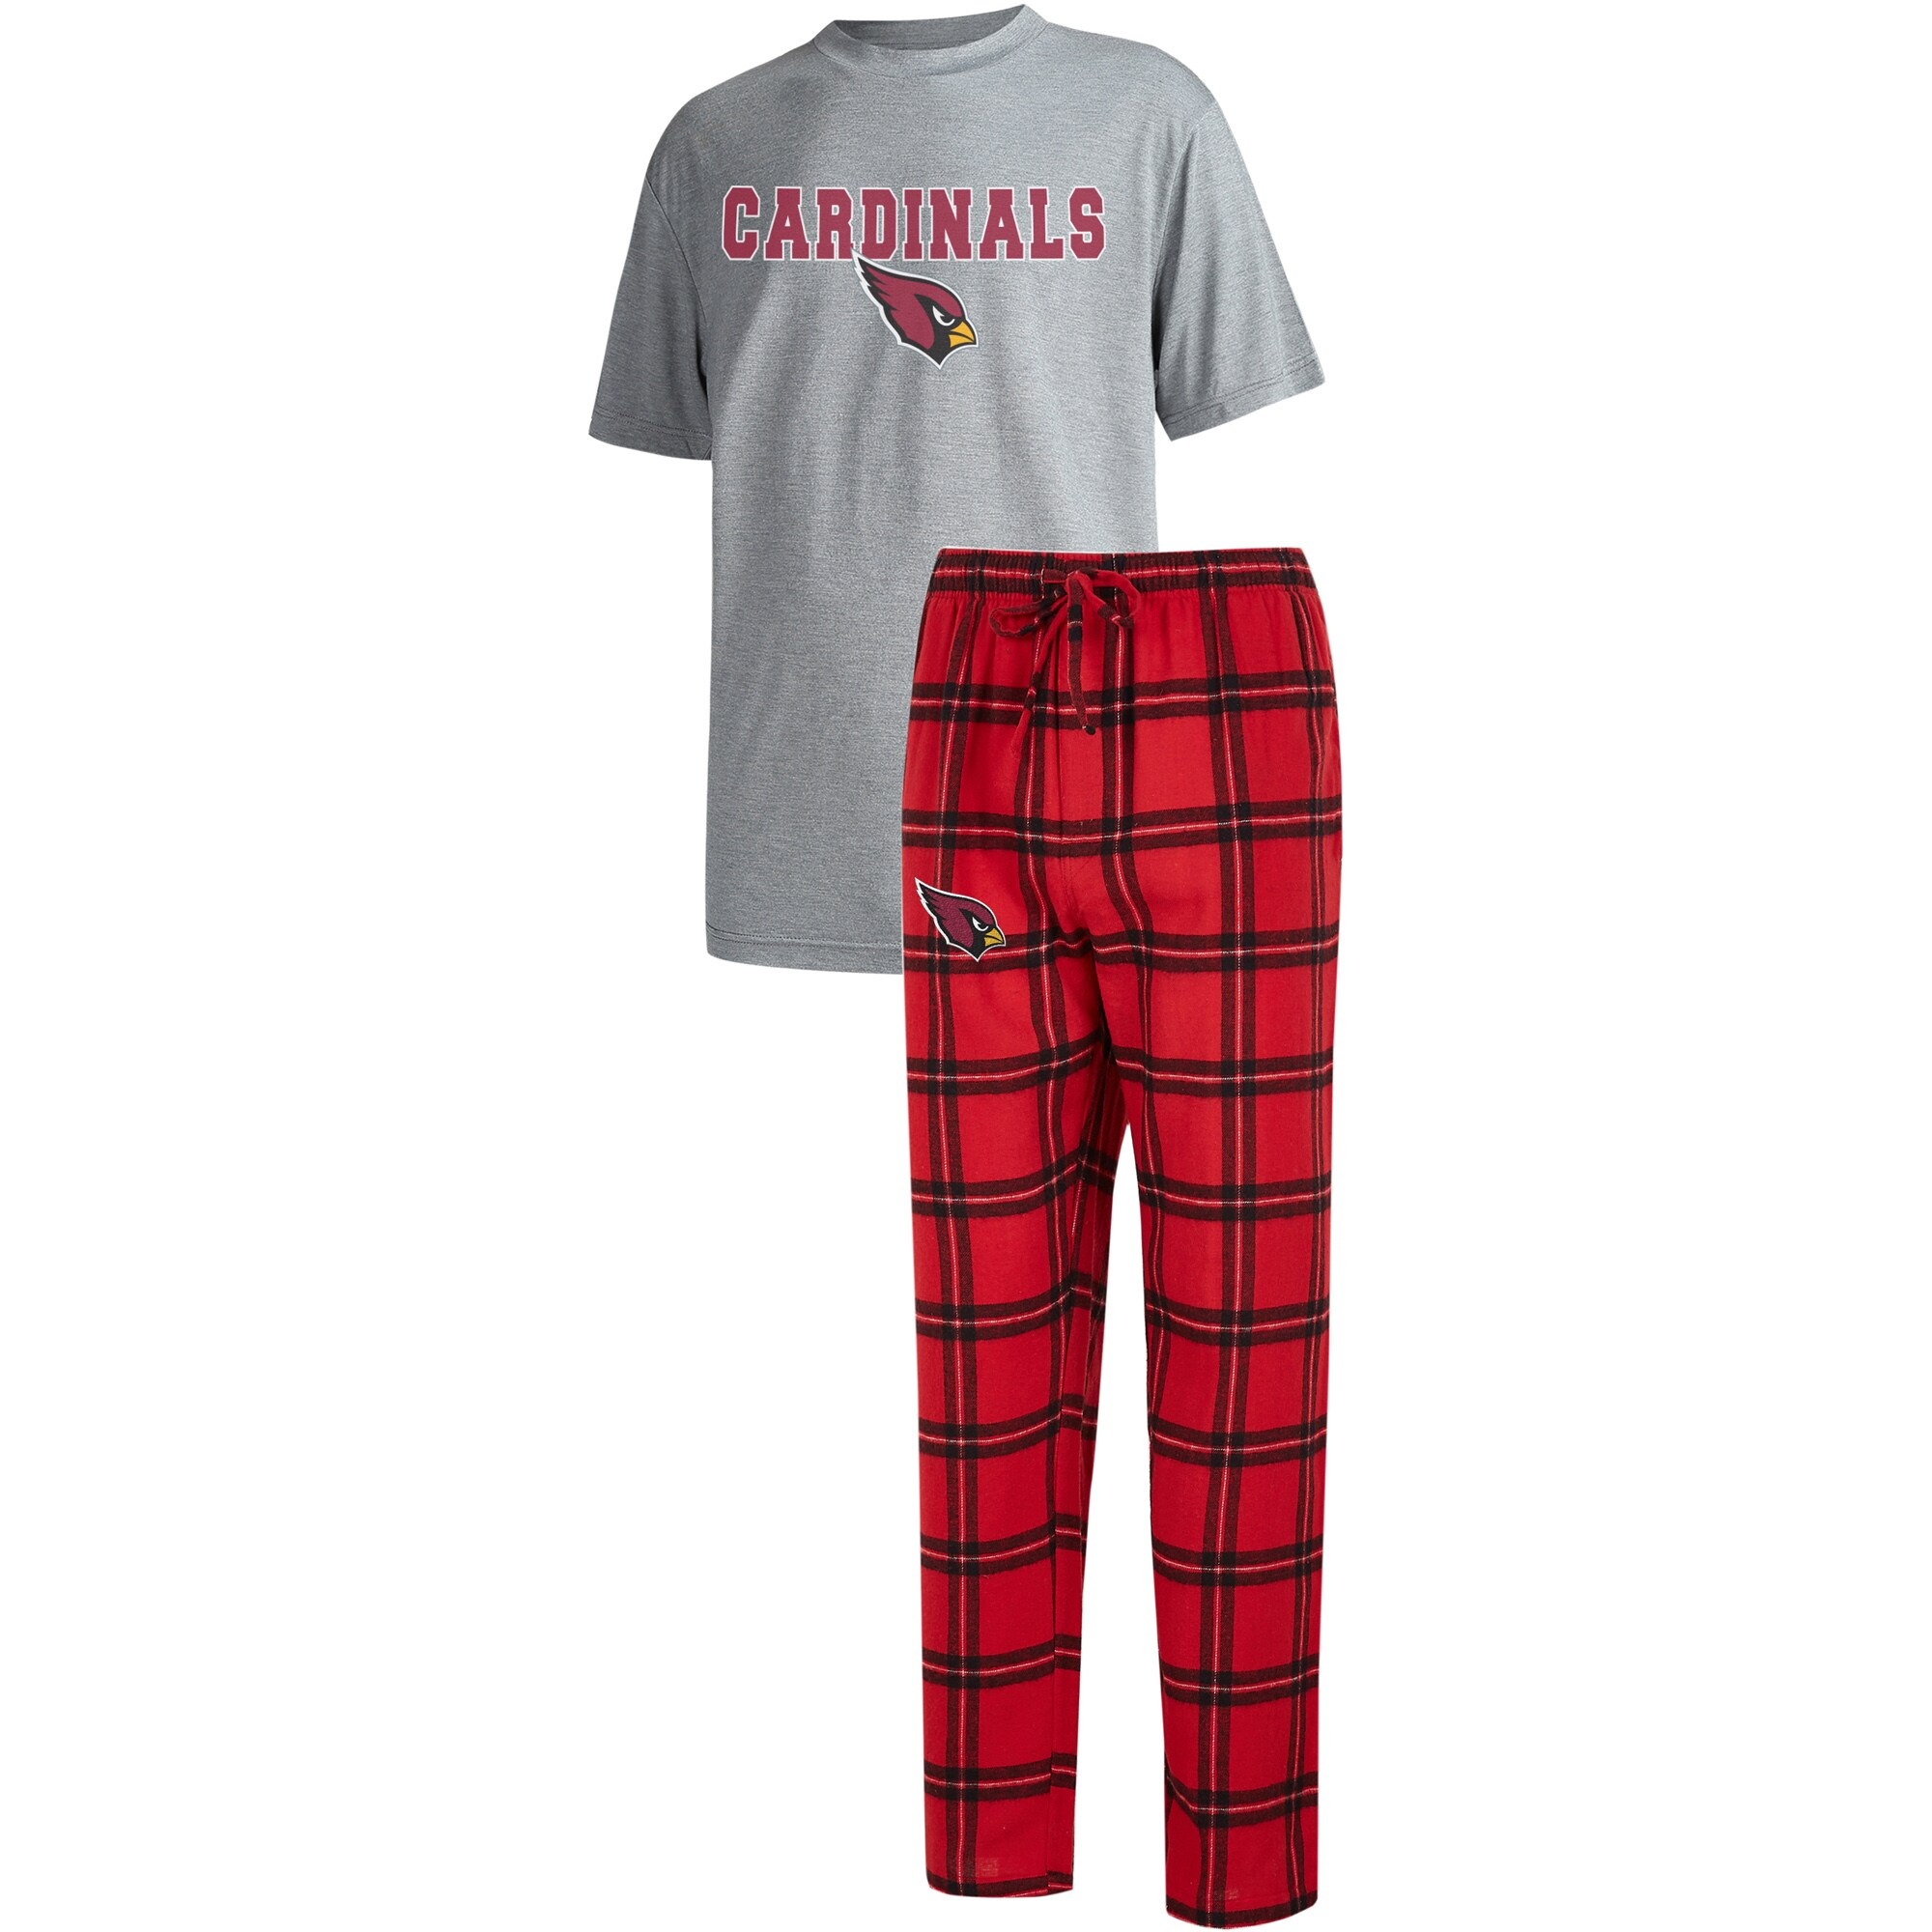 Arizona Cardinals Concepts Sport Big & Tall Troupe T-Shirt & Pants Sleep Set - Cardinal/Heathered Gray